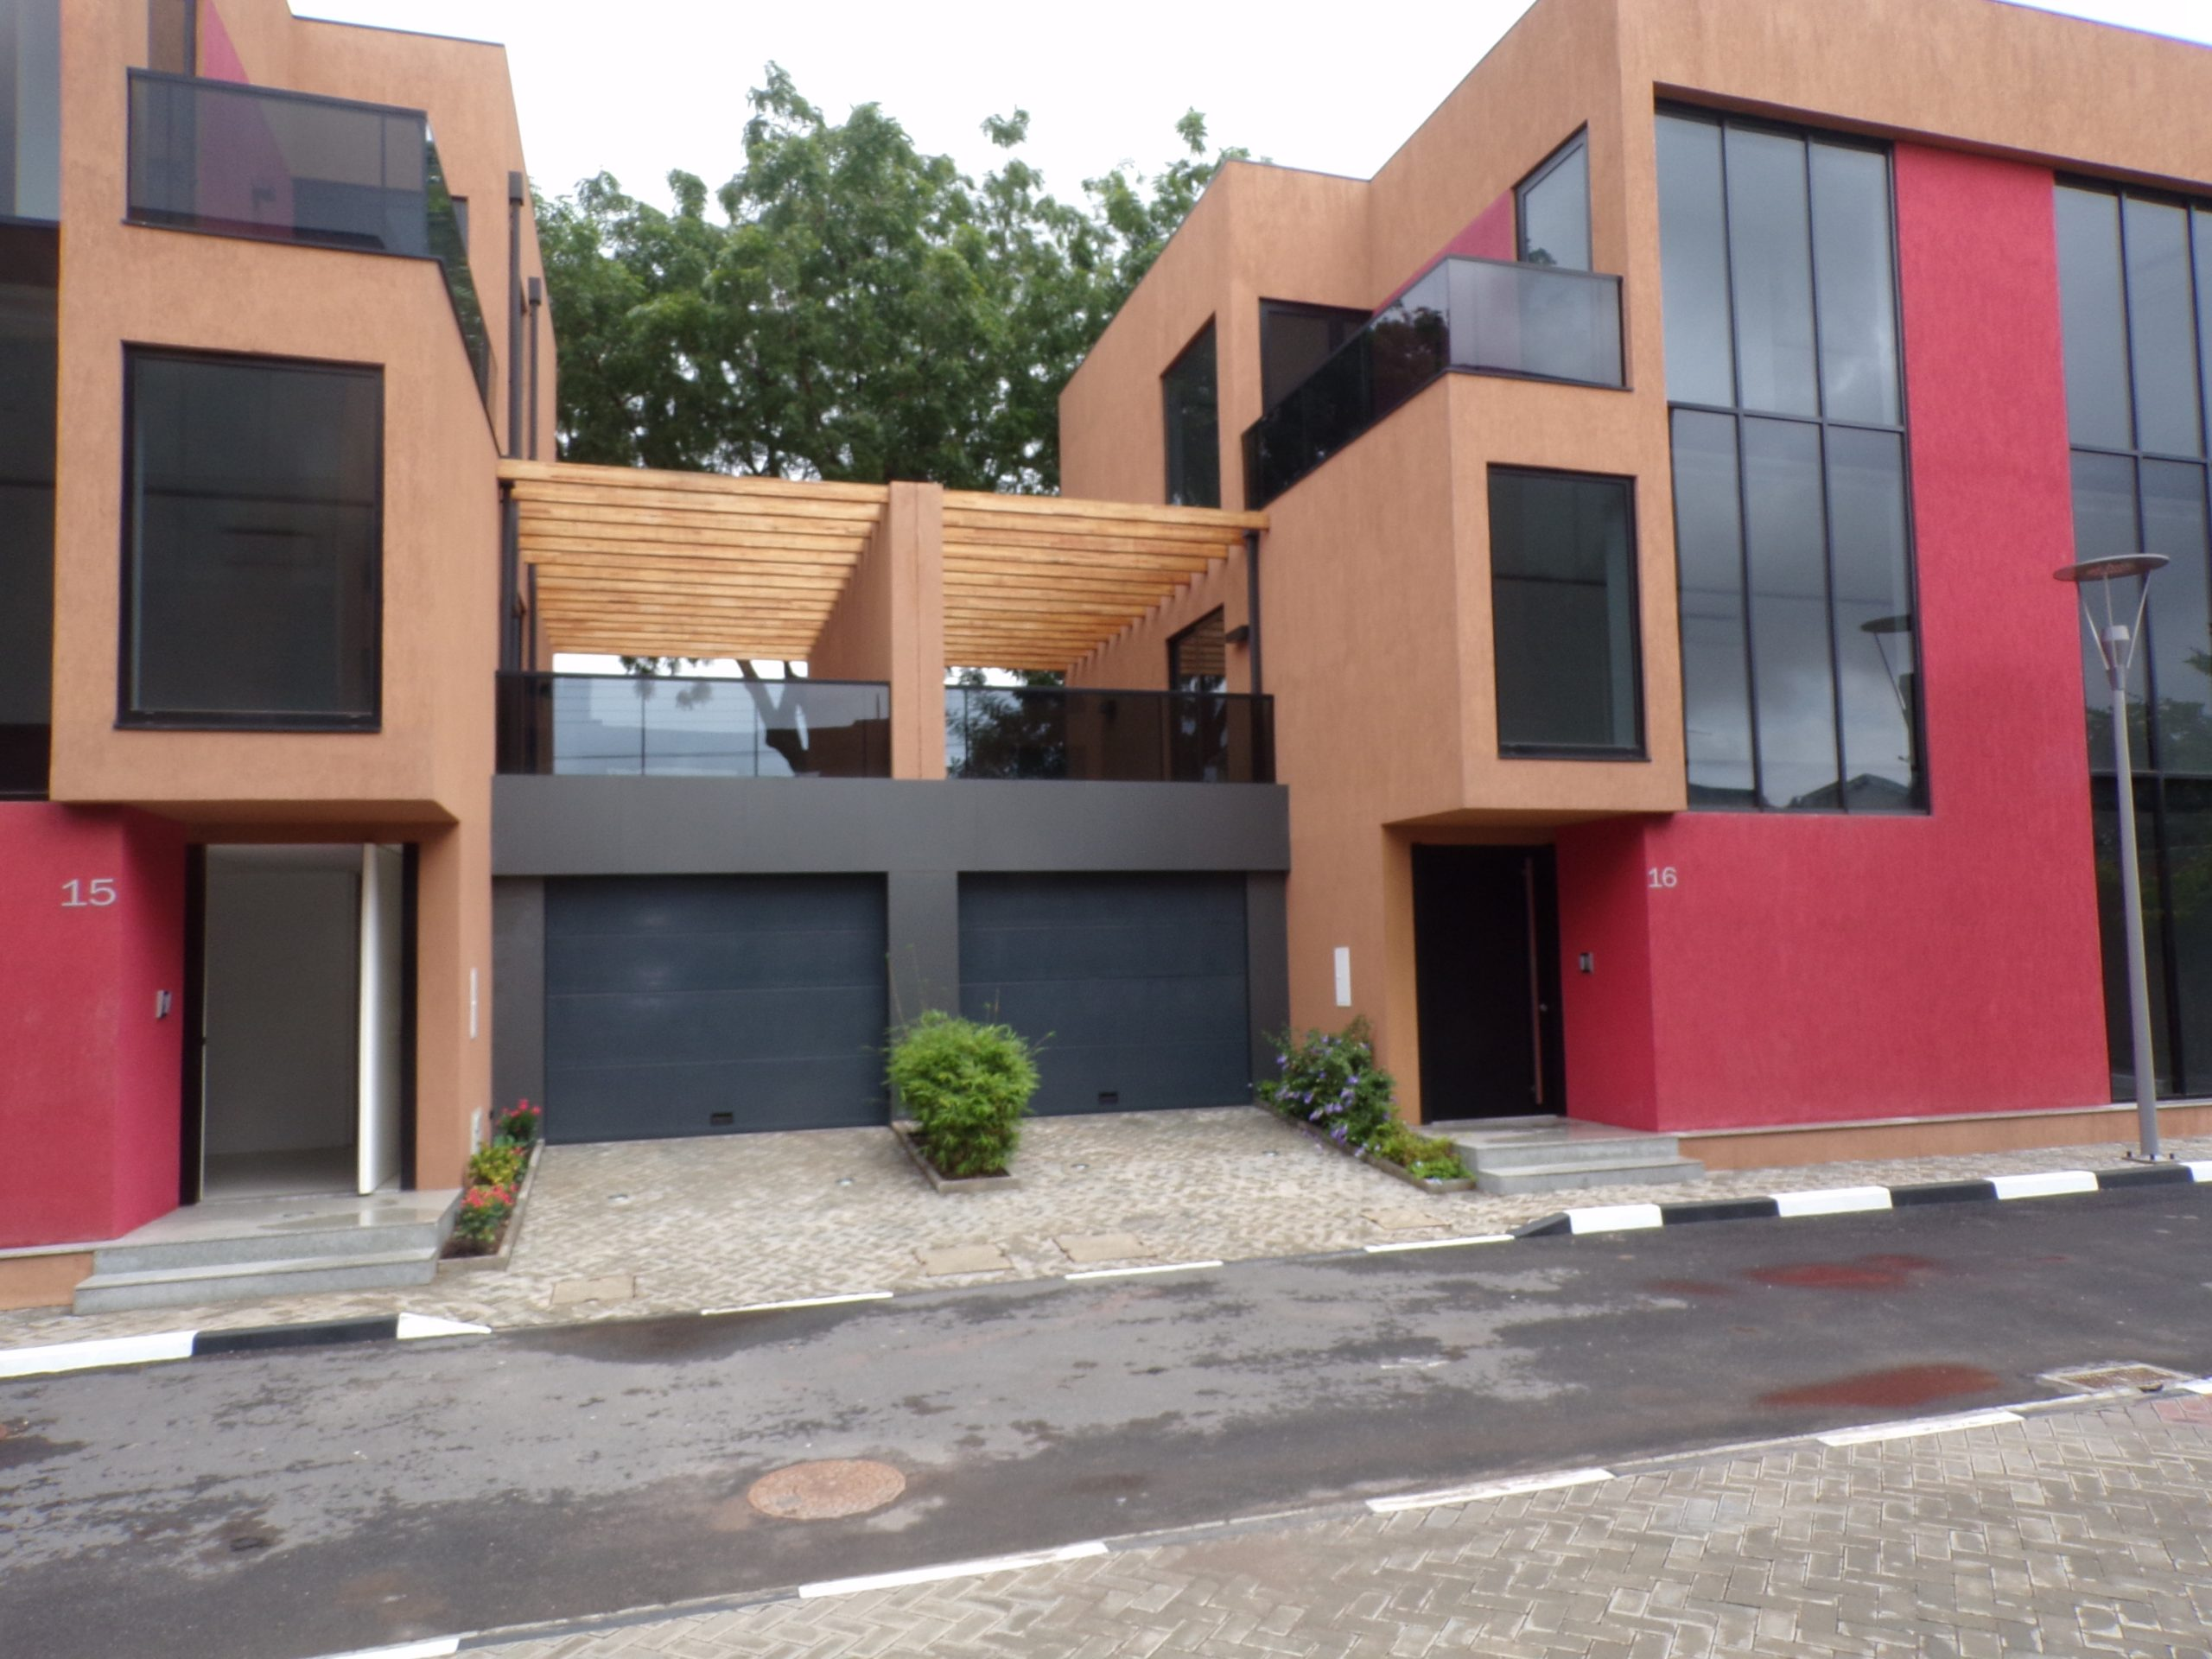 4 BEDROOM LUXURY UNFURNISHED TOWNHOUSE FOR RENT AT CANTONMENTS